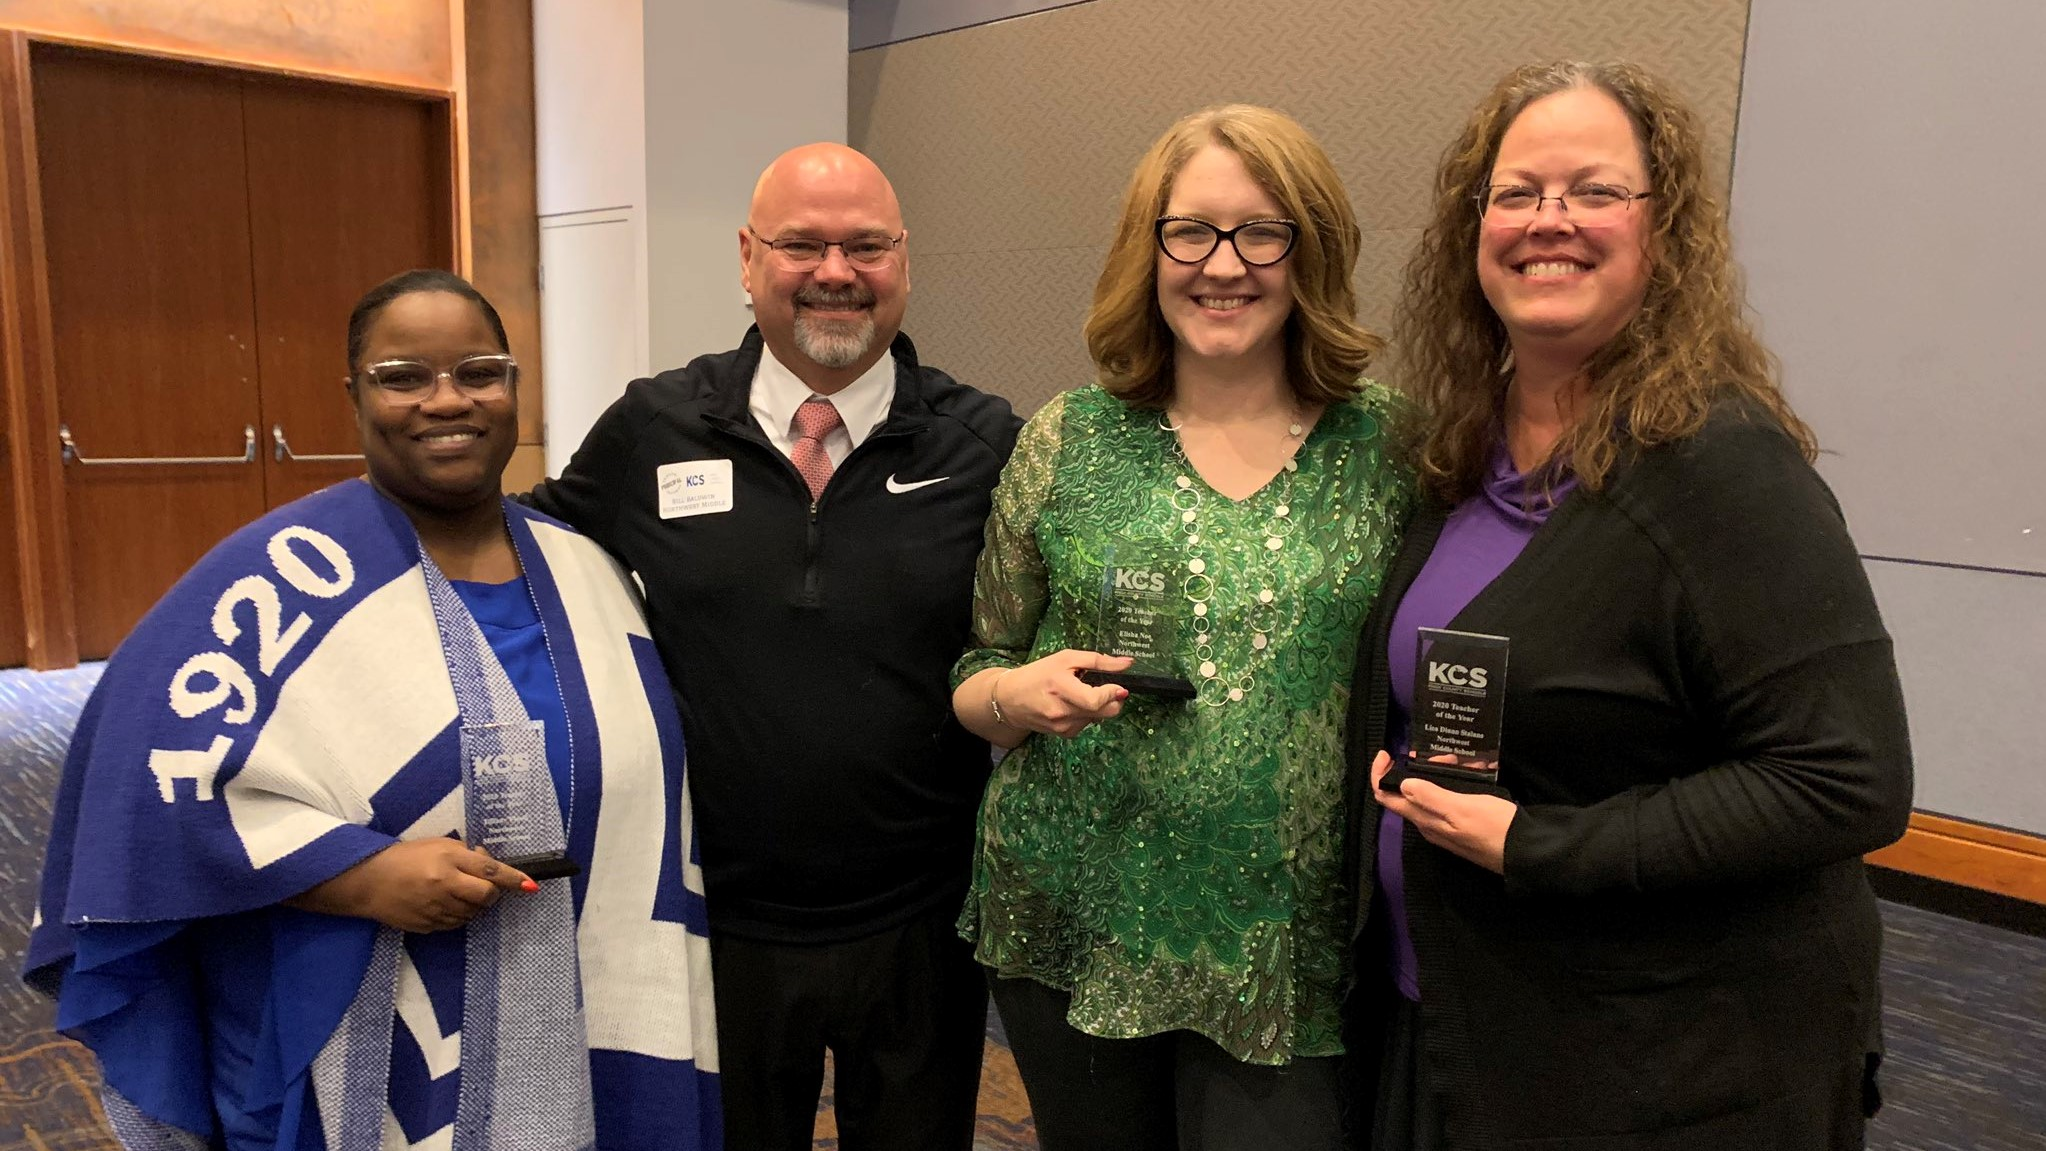 Northwest Middle School principal Bill Baldwin poses with teachers Tiffany Flood, Elisha Noe and Lisa Stalans at the Teacher of the Year banquet on Feb. 18, 2020.